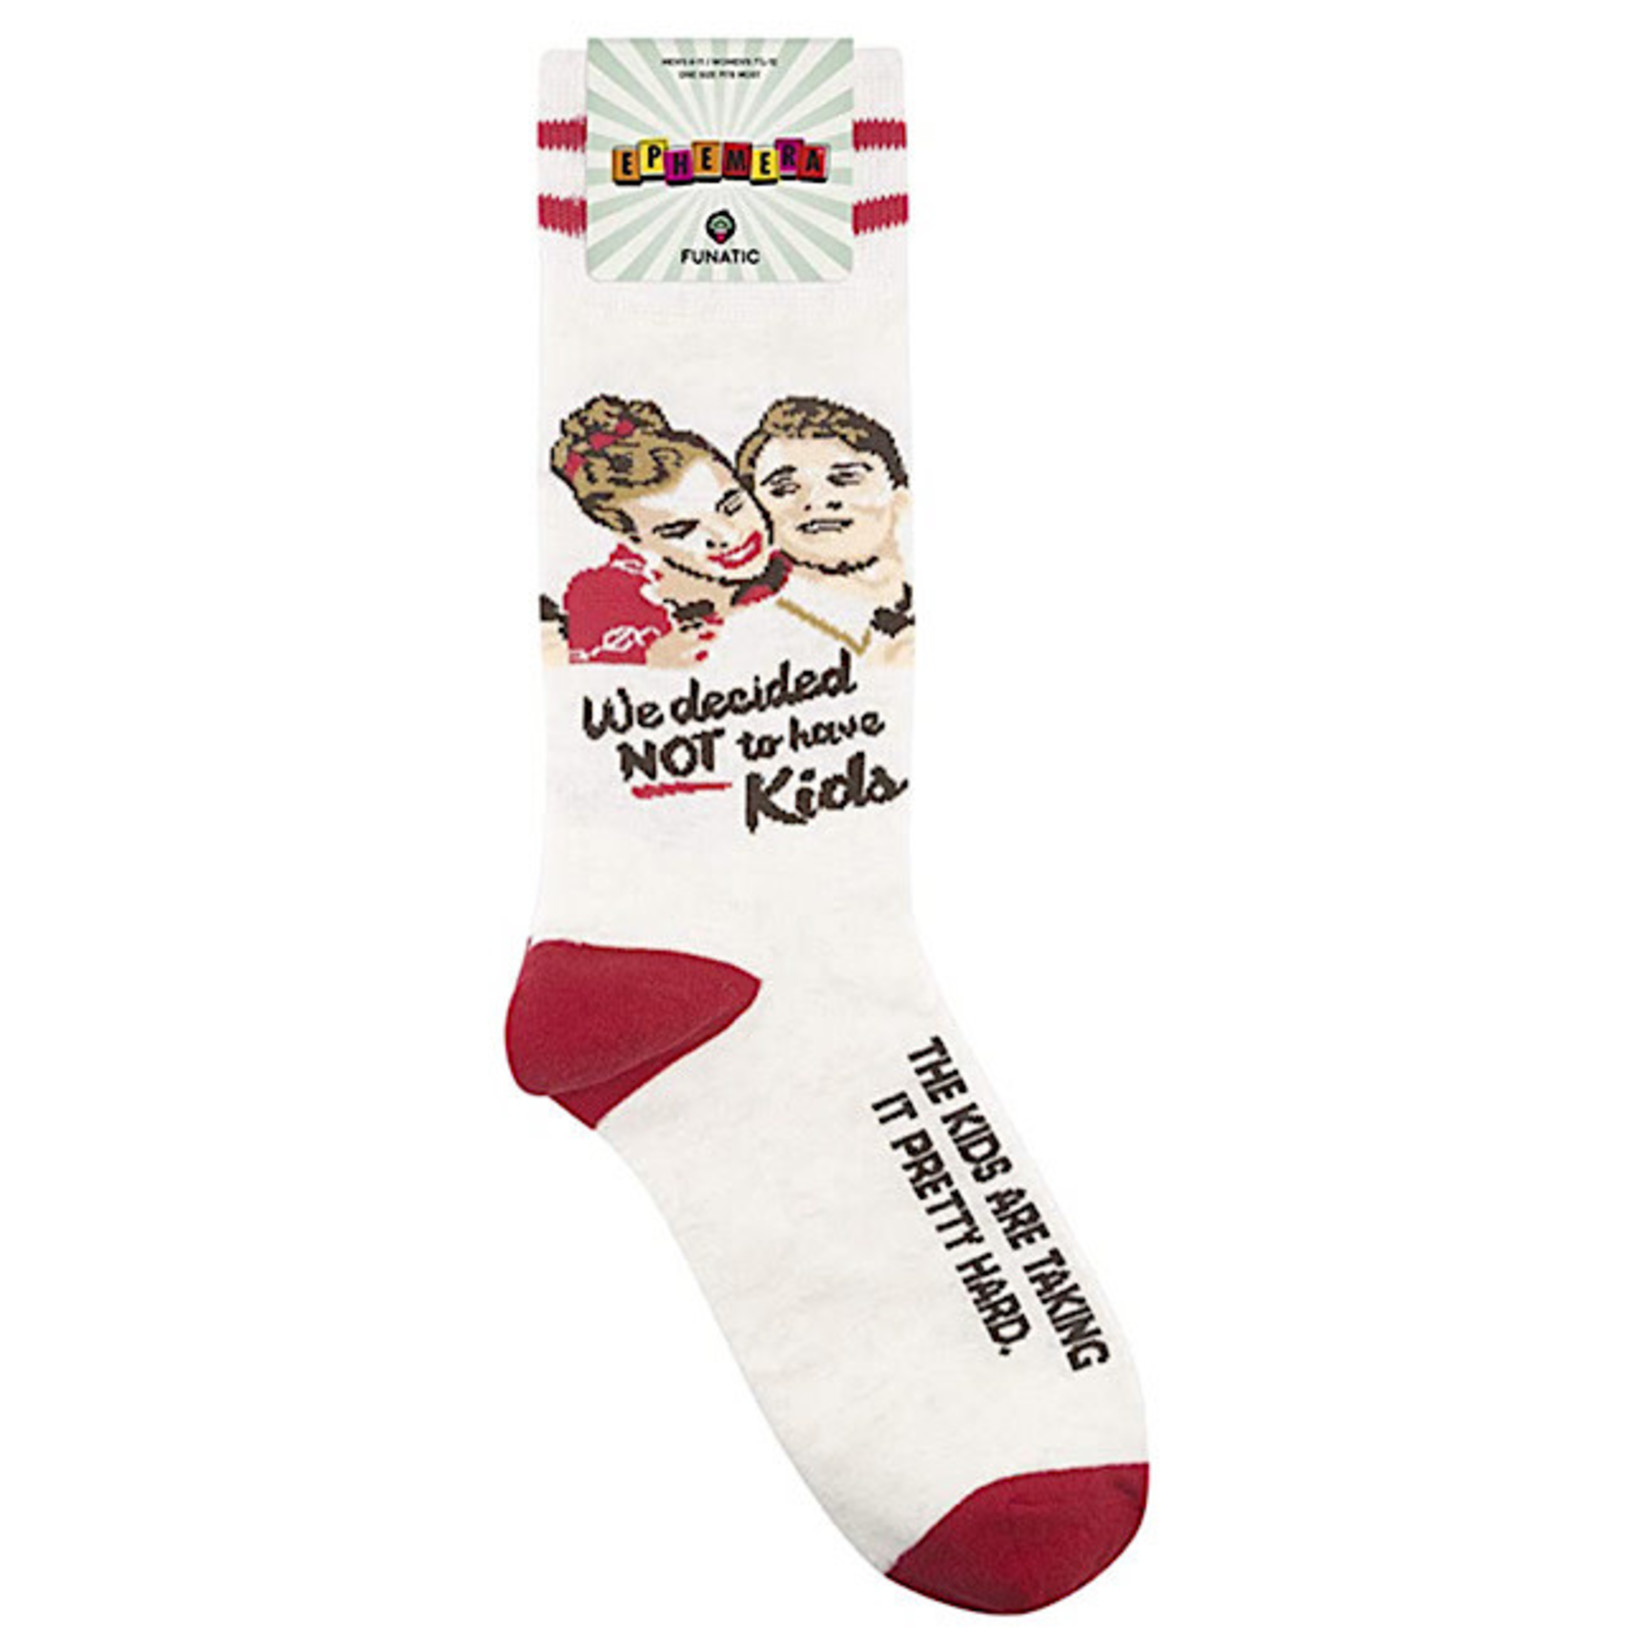 Socks (Unisex) - We Decided Not To Have Kids